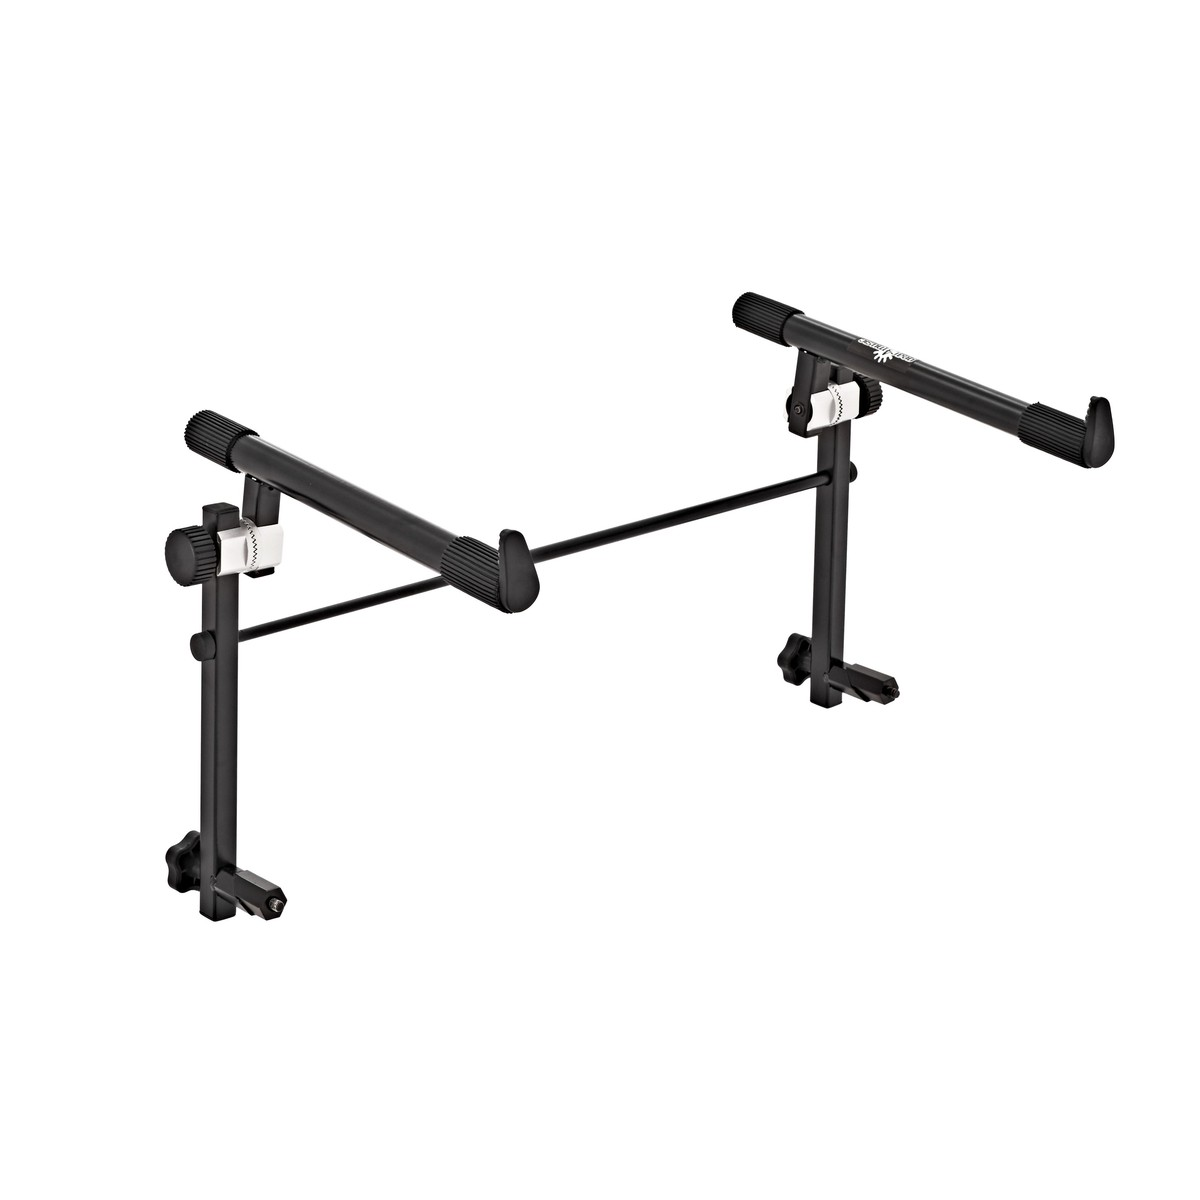 Adjustable 2nd Tier Add on for Double Braced X-Frame Keyboard Stand ...